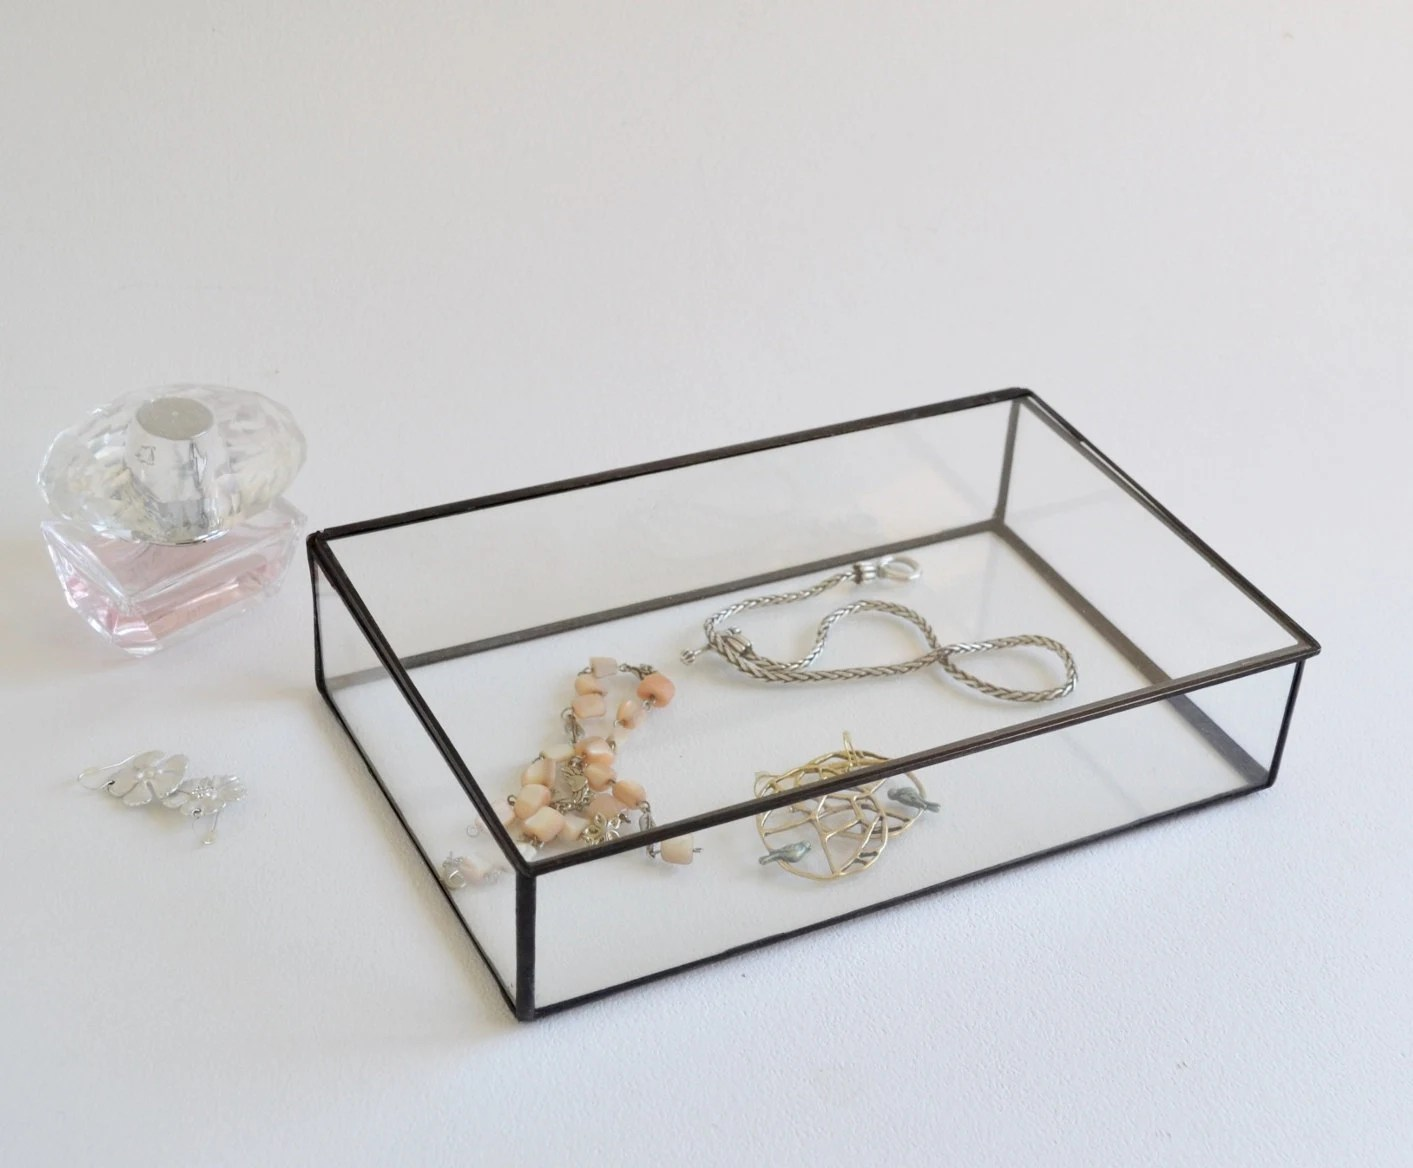 Display Glas Glass Box Glass Display Box Glass Jewelry Box Wedding Display Box Clear Glass Jewelry Box Made To Order